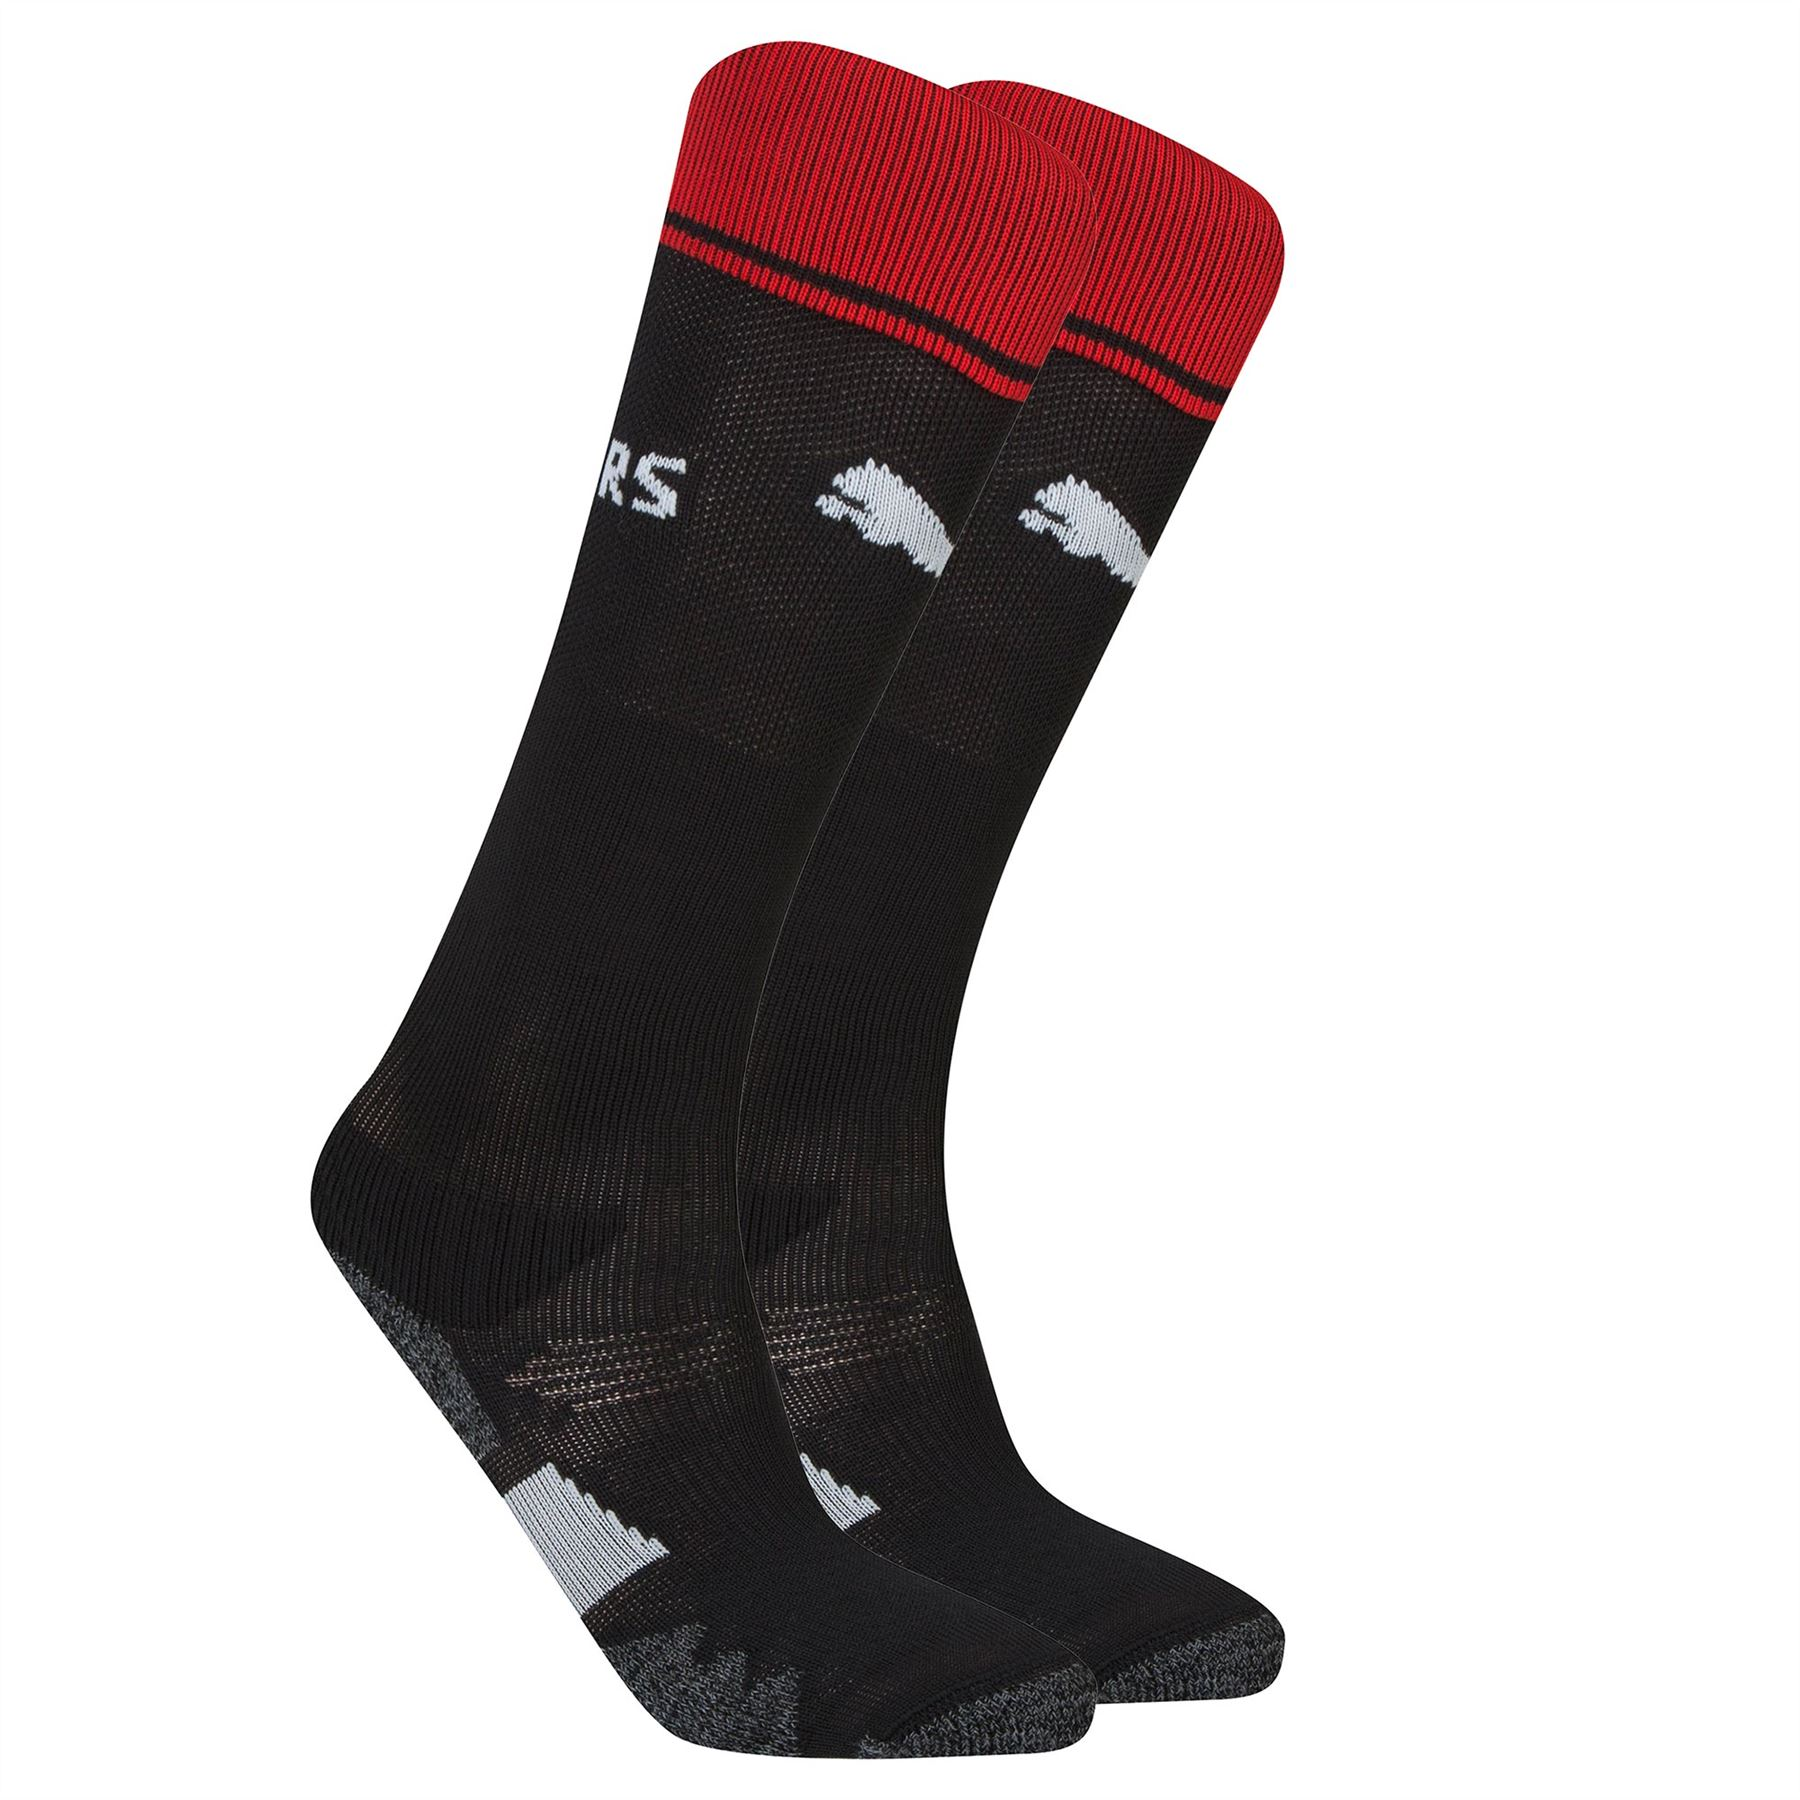 Many kids' socks are sport-specific, including kids' football socks, baseball socks and basketball socks. Classic crew socks, no-shoe socks and low-cut socks are great for everyday wear. Some socks come with a left and right anatomical fit, which feels more natural on feet for long wear.